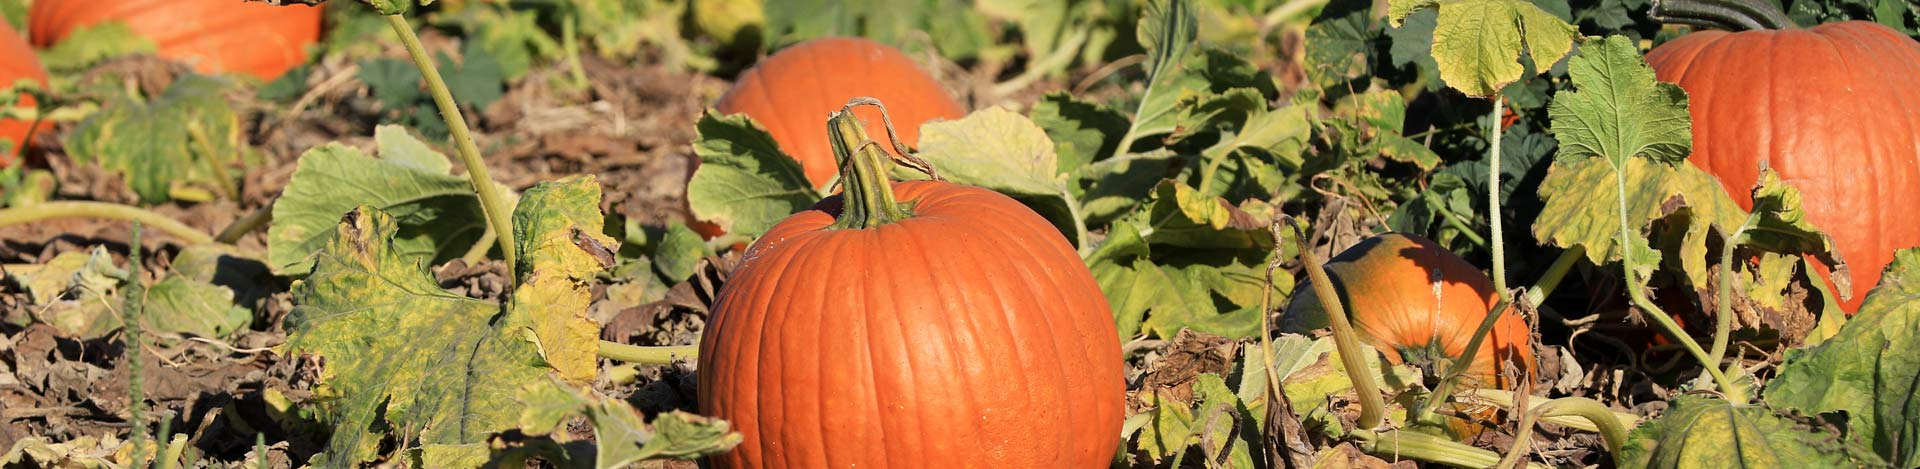 Pumpkin Patch at Country Roads Family Fun Farm - Stotts City, Missouri